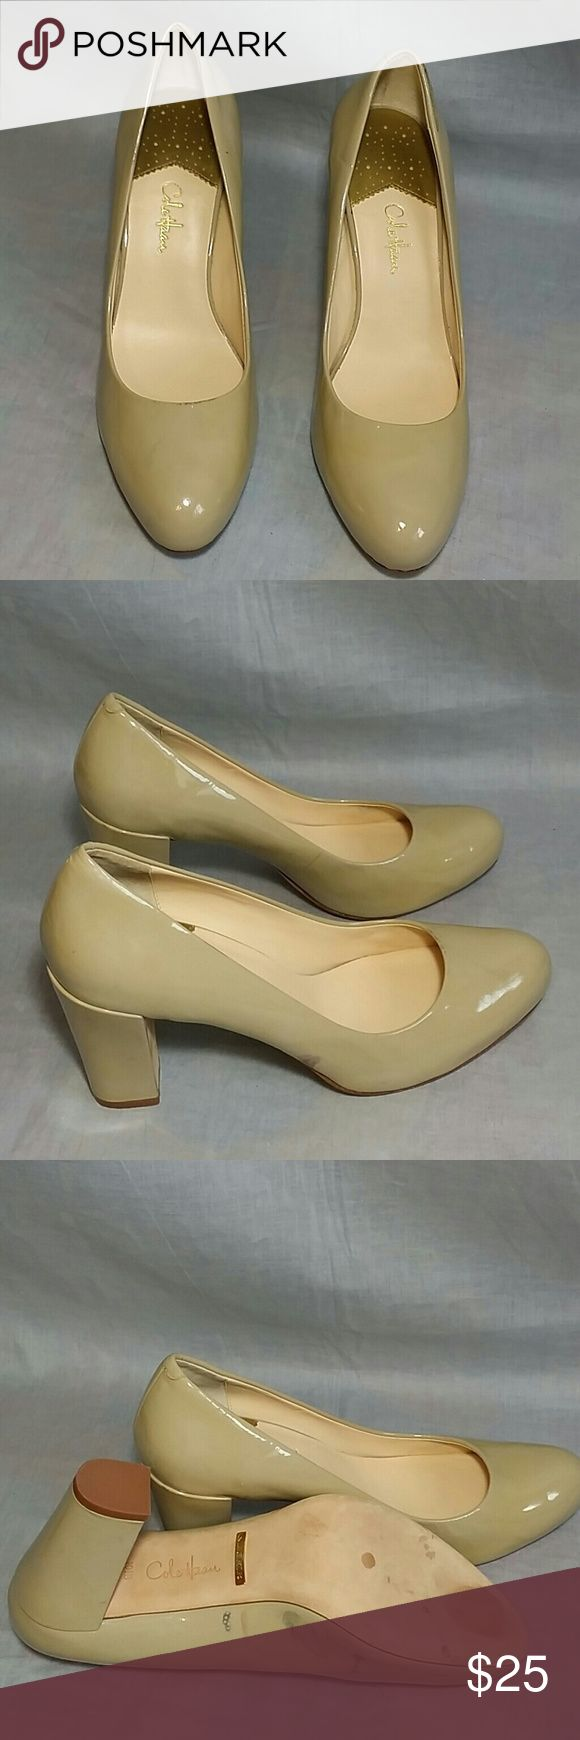 """Cole Haan Dress Shoes Beige 10.5 B Heels 3.75"""" NIKE AIR, Item has a sign of being used, please check the pictures but it's in a good condition, NO PETS AND SMOKE FREE HOME. Cole Haan Shoes Heels"""